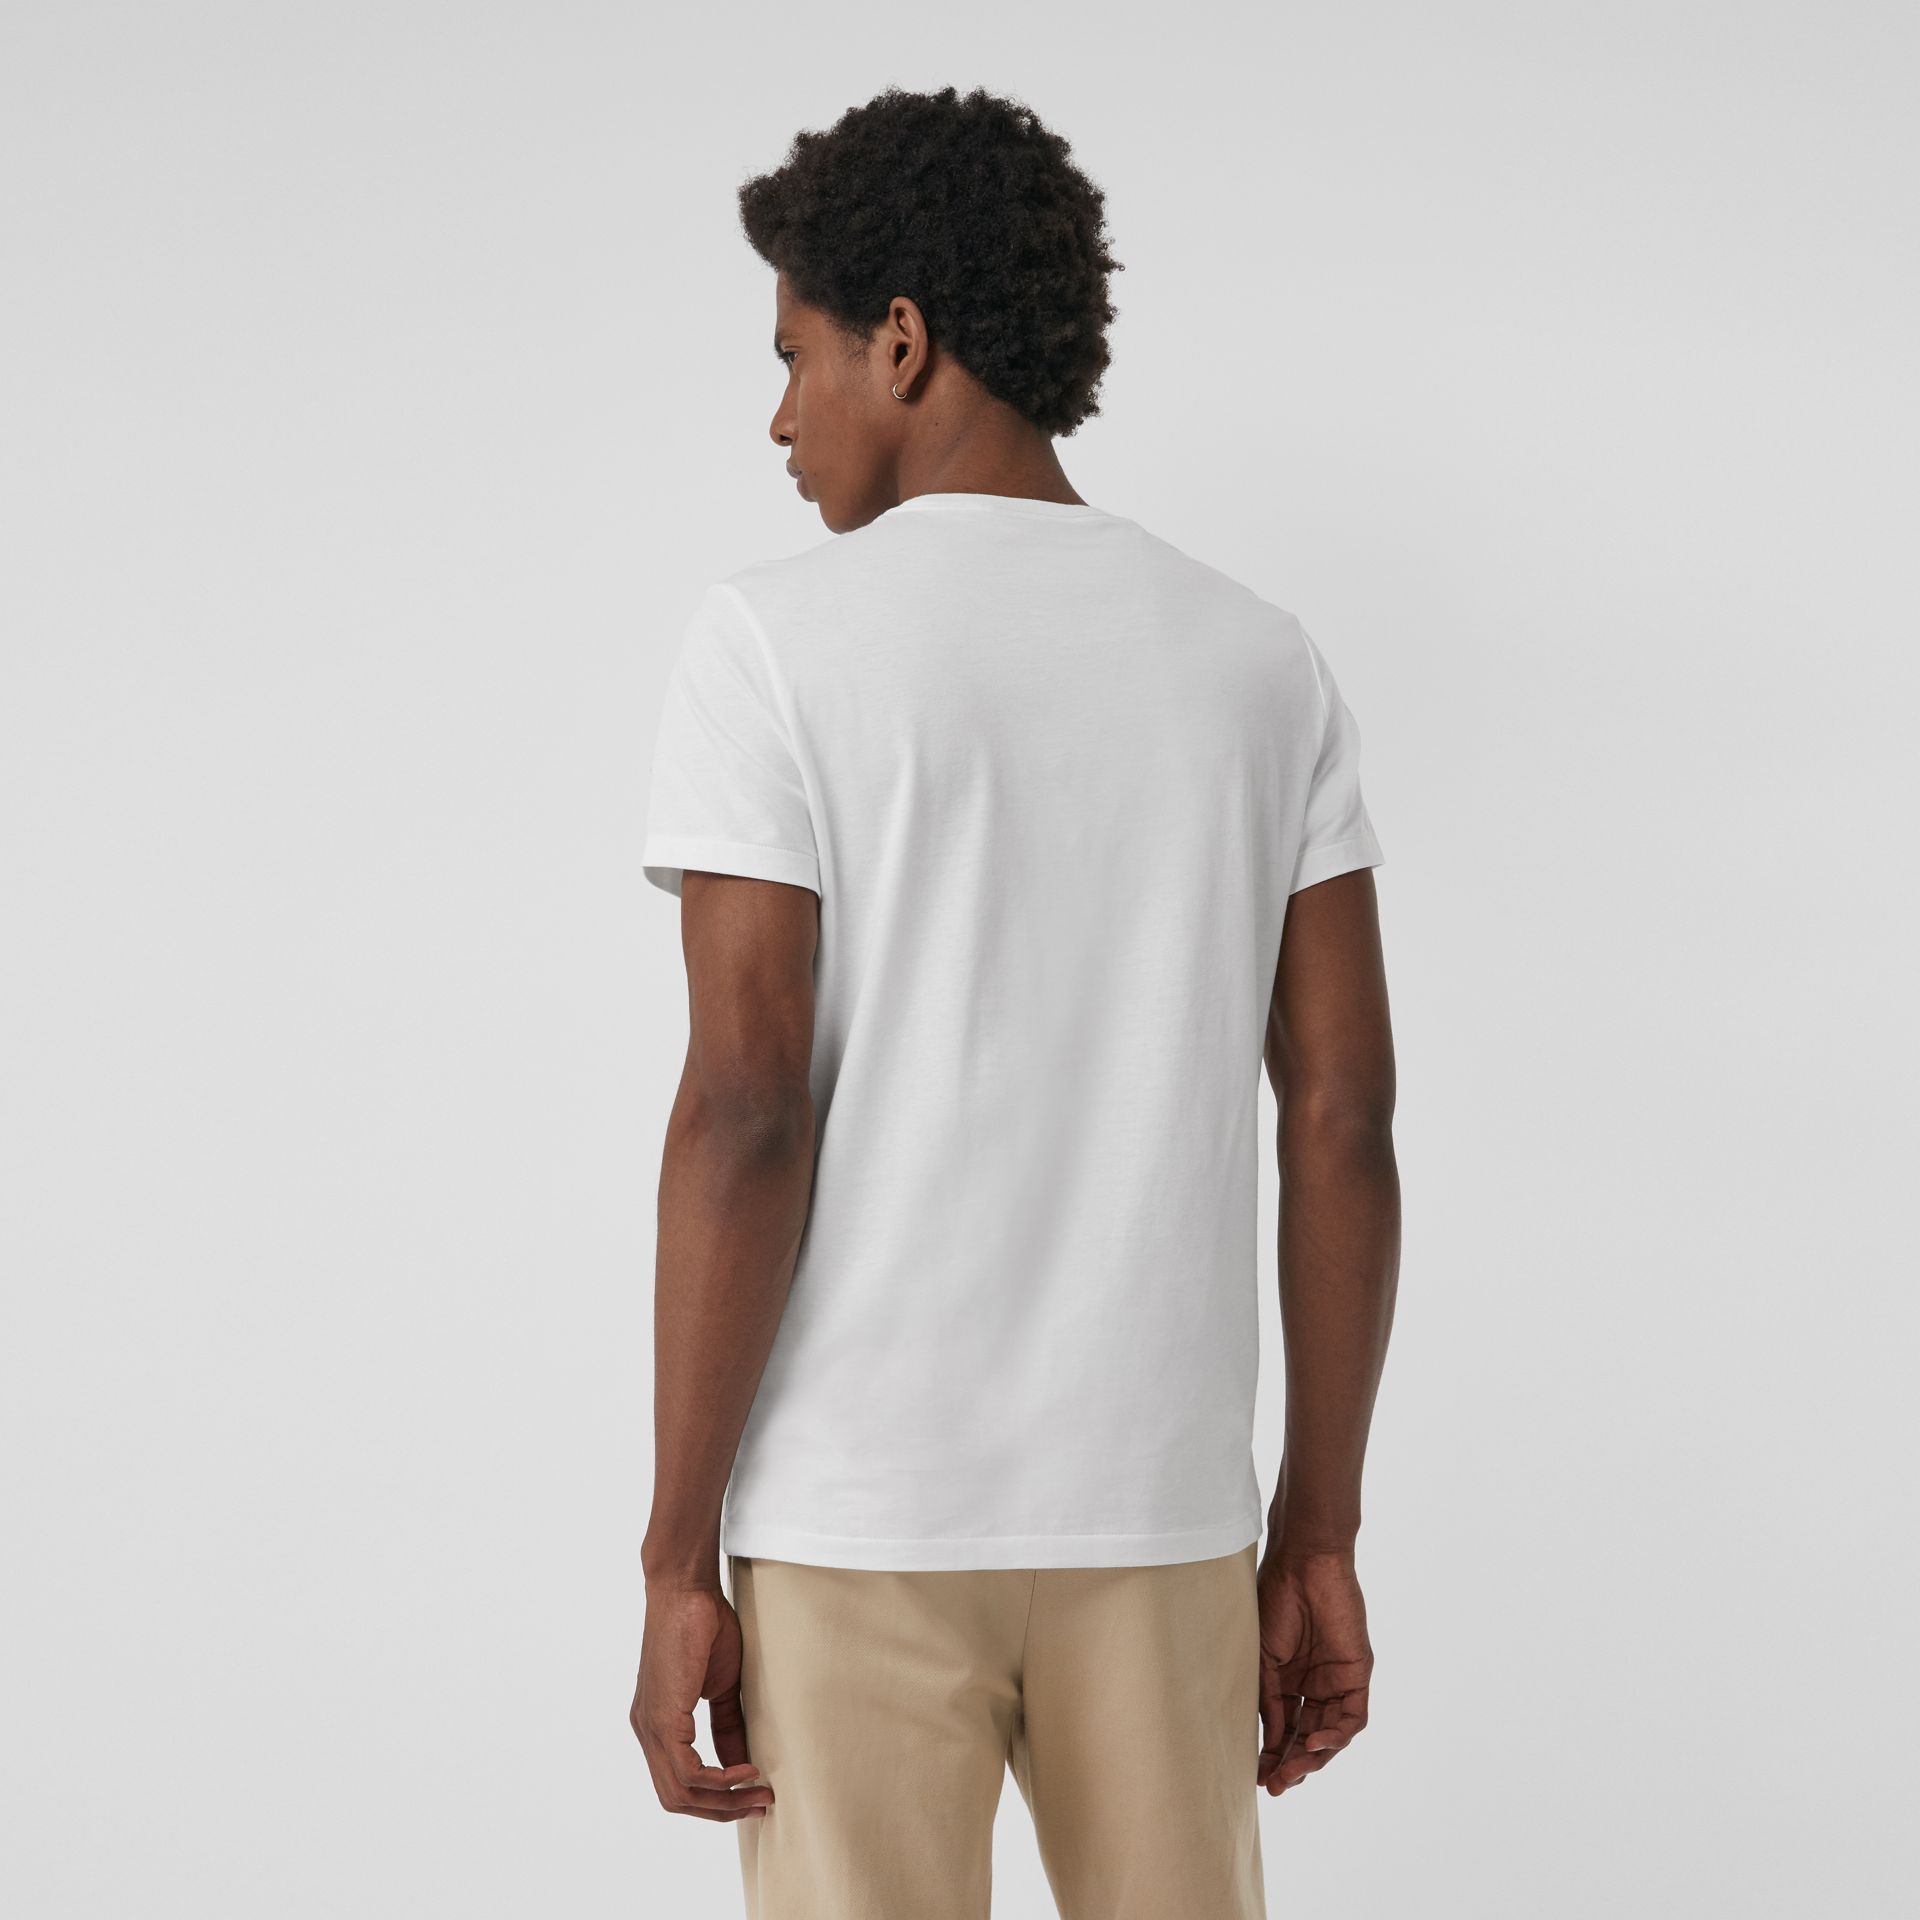 Cotton Jersey T-shirt in White - Men | Burberry - gallery image 2